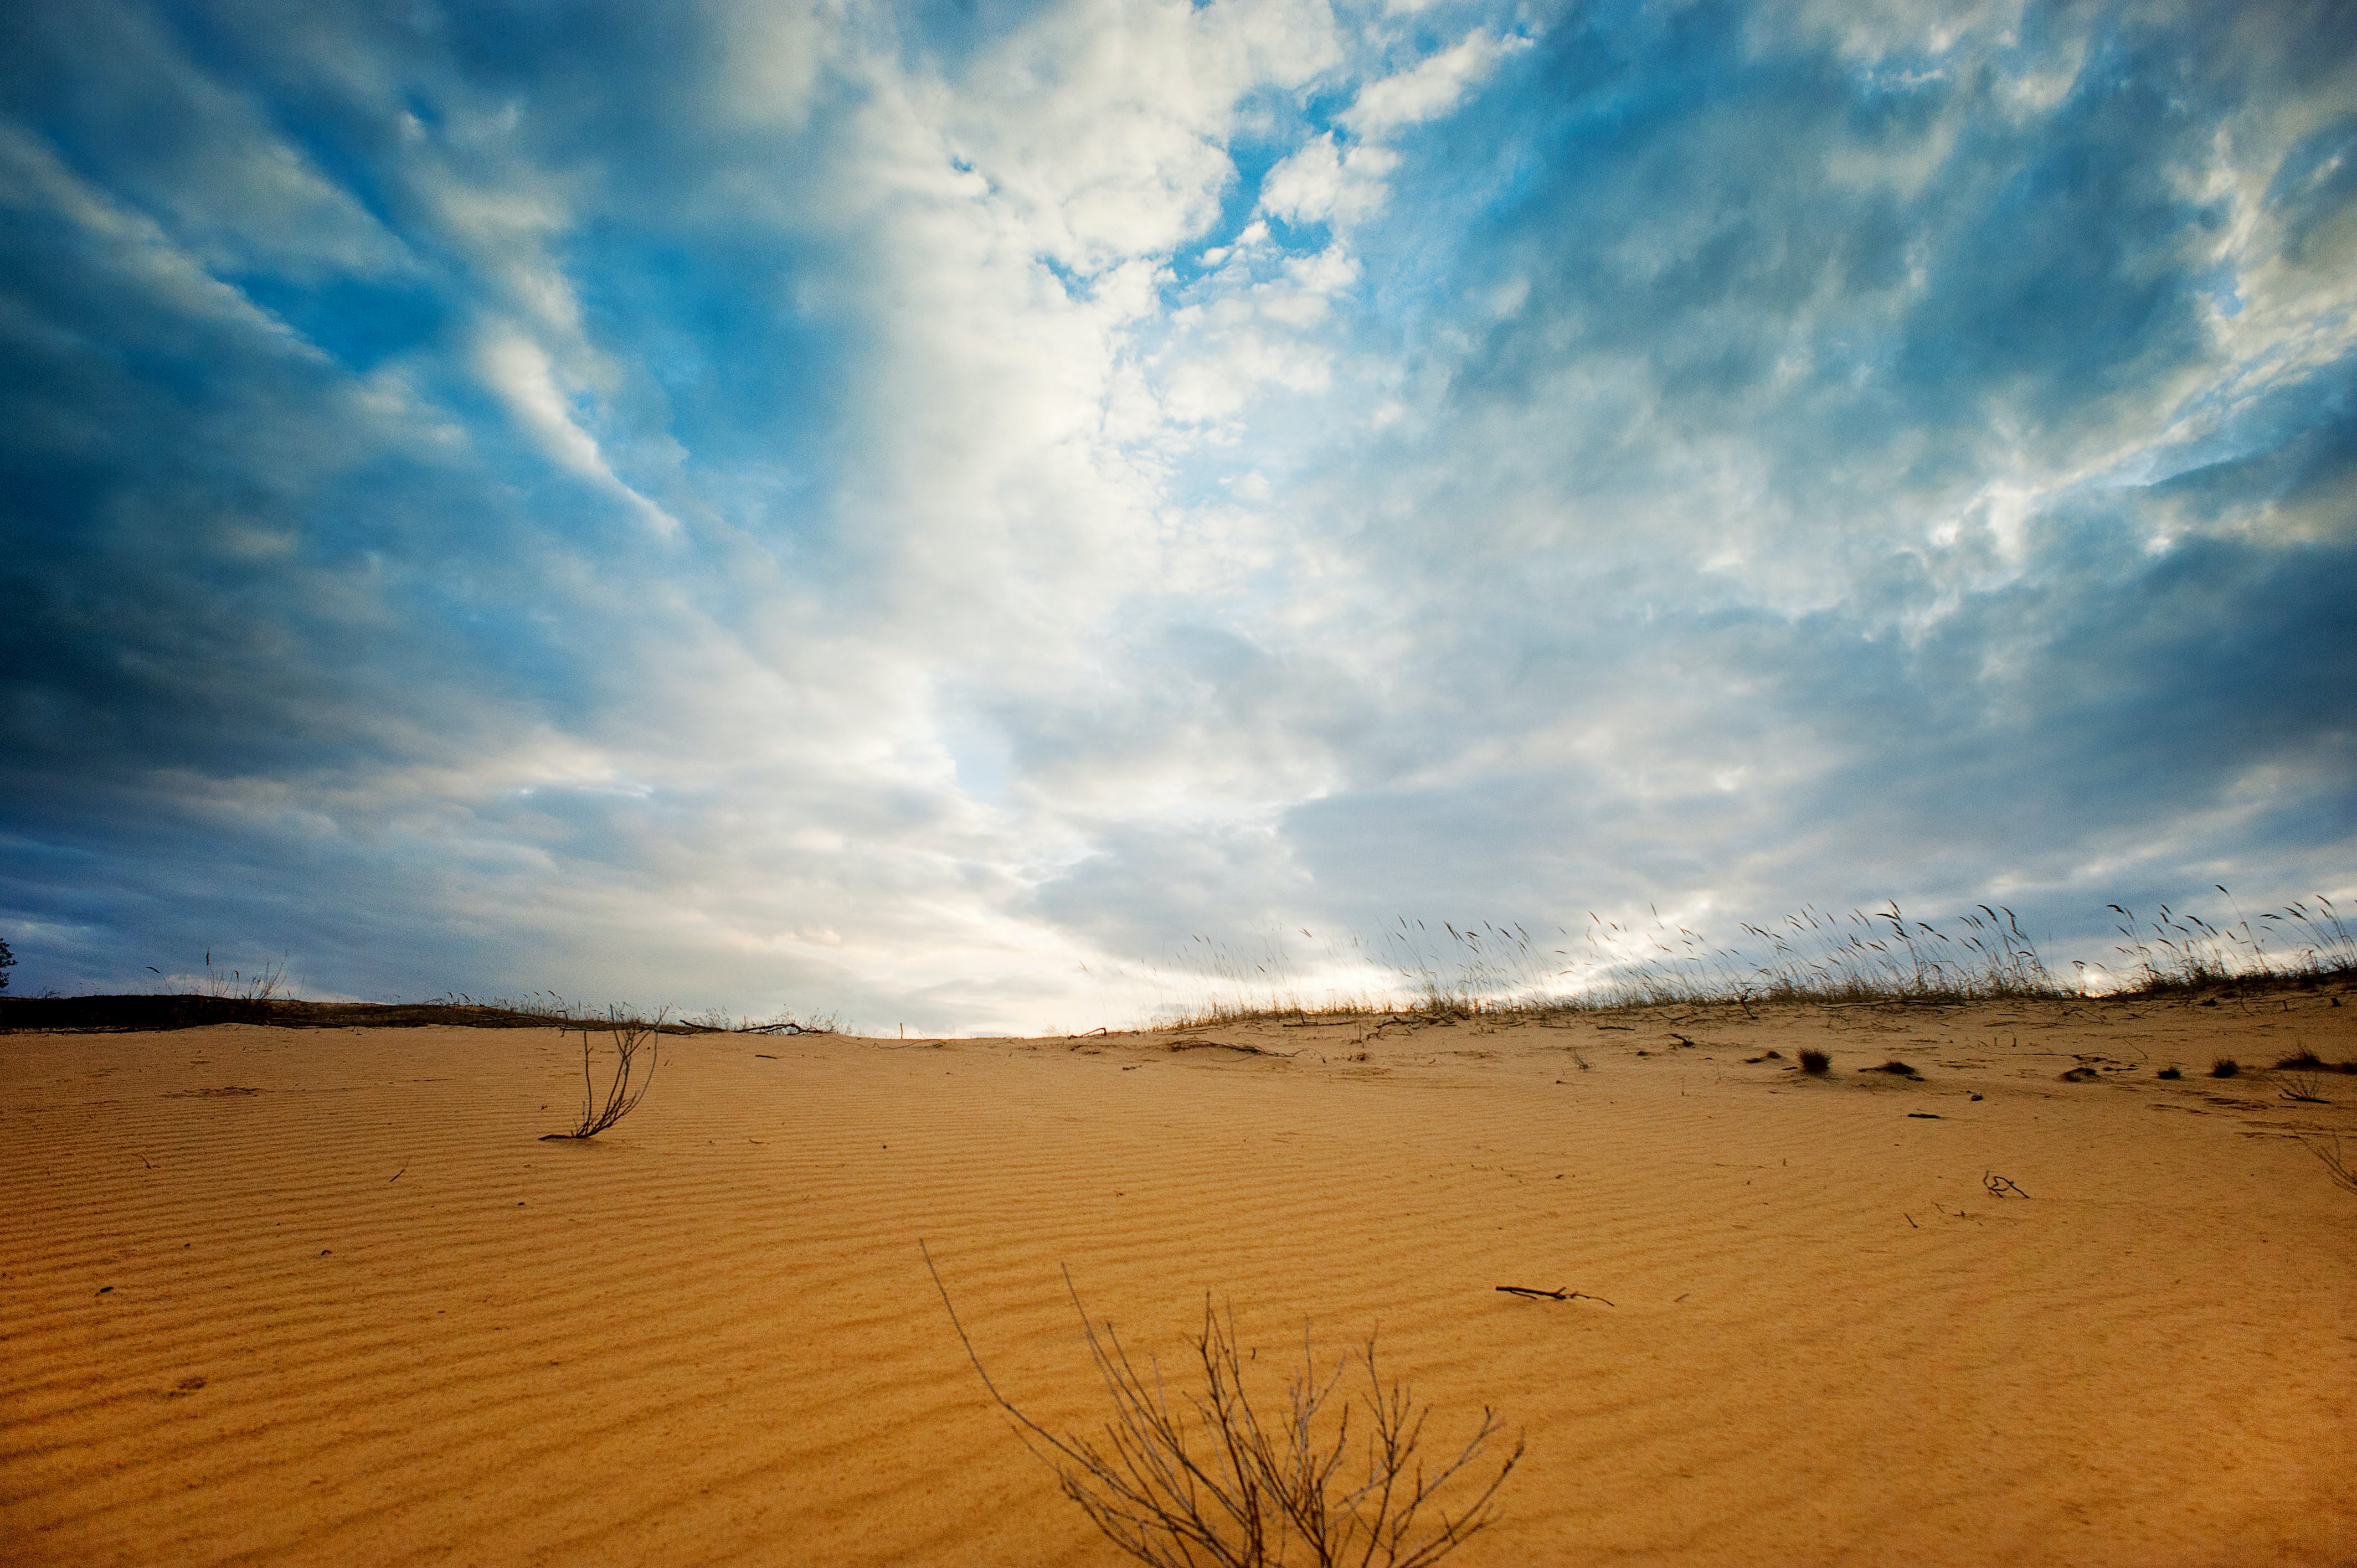 Free stock photo of nature, sky, sand, desert